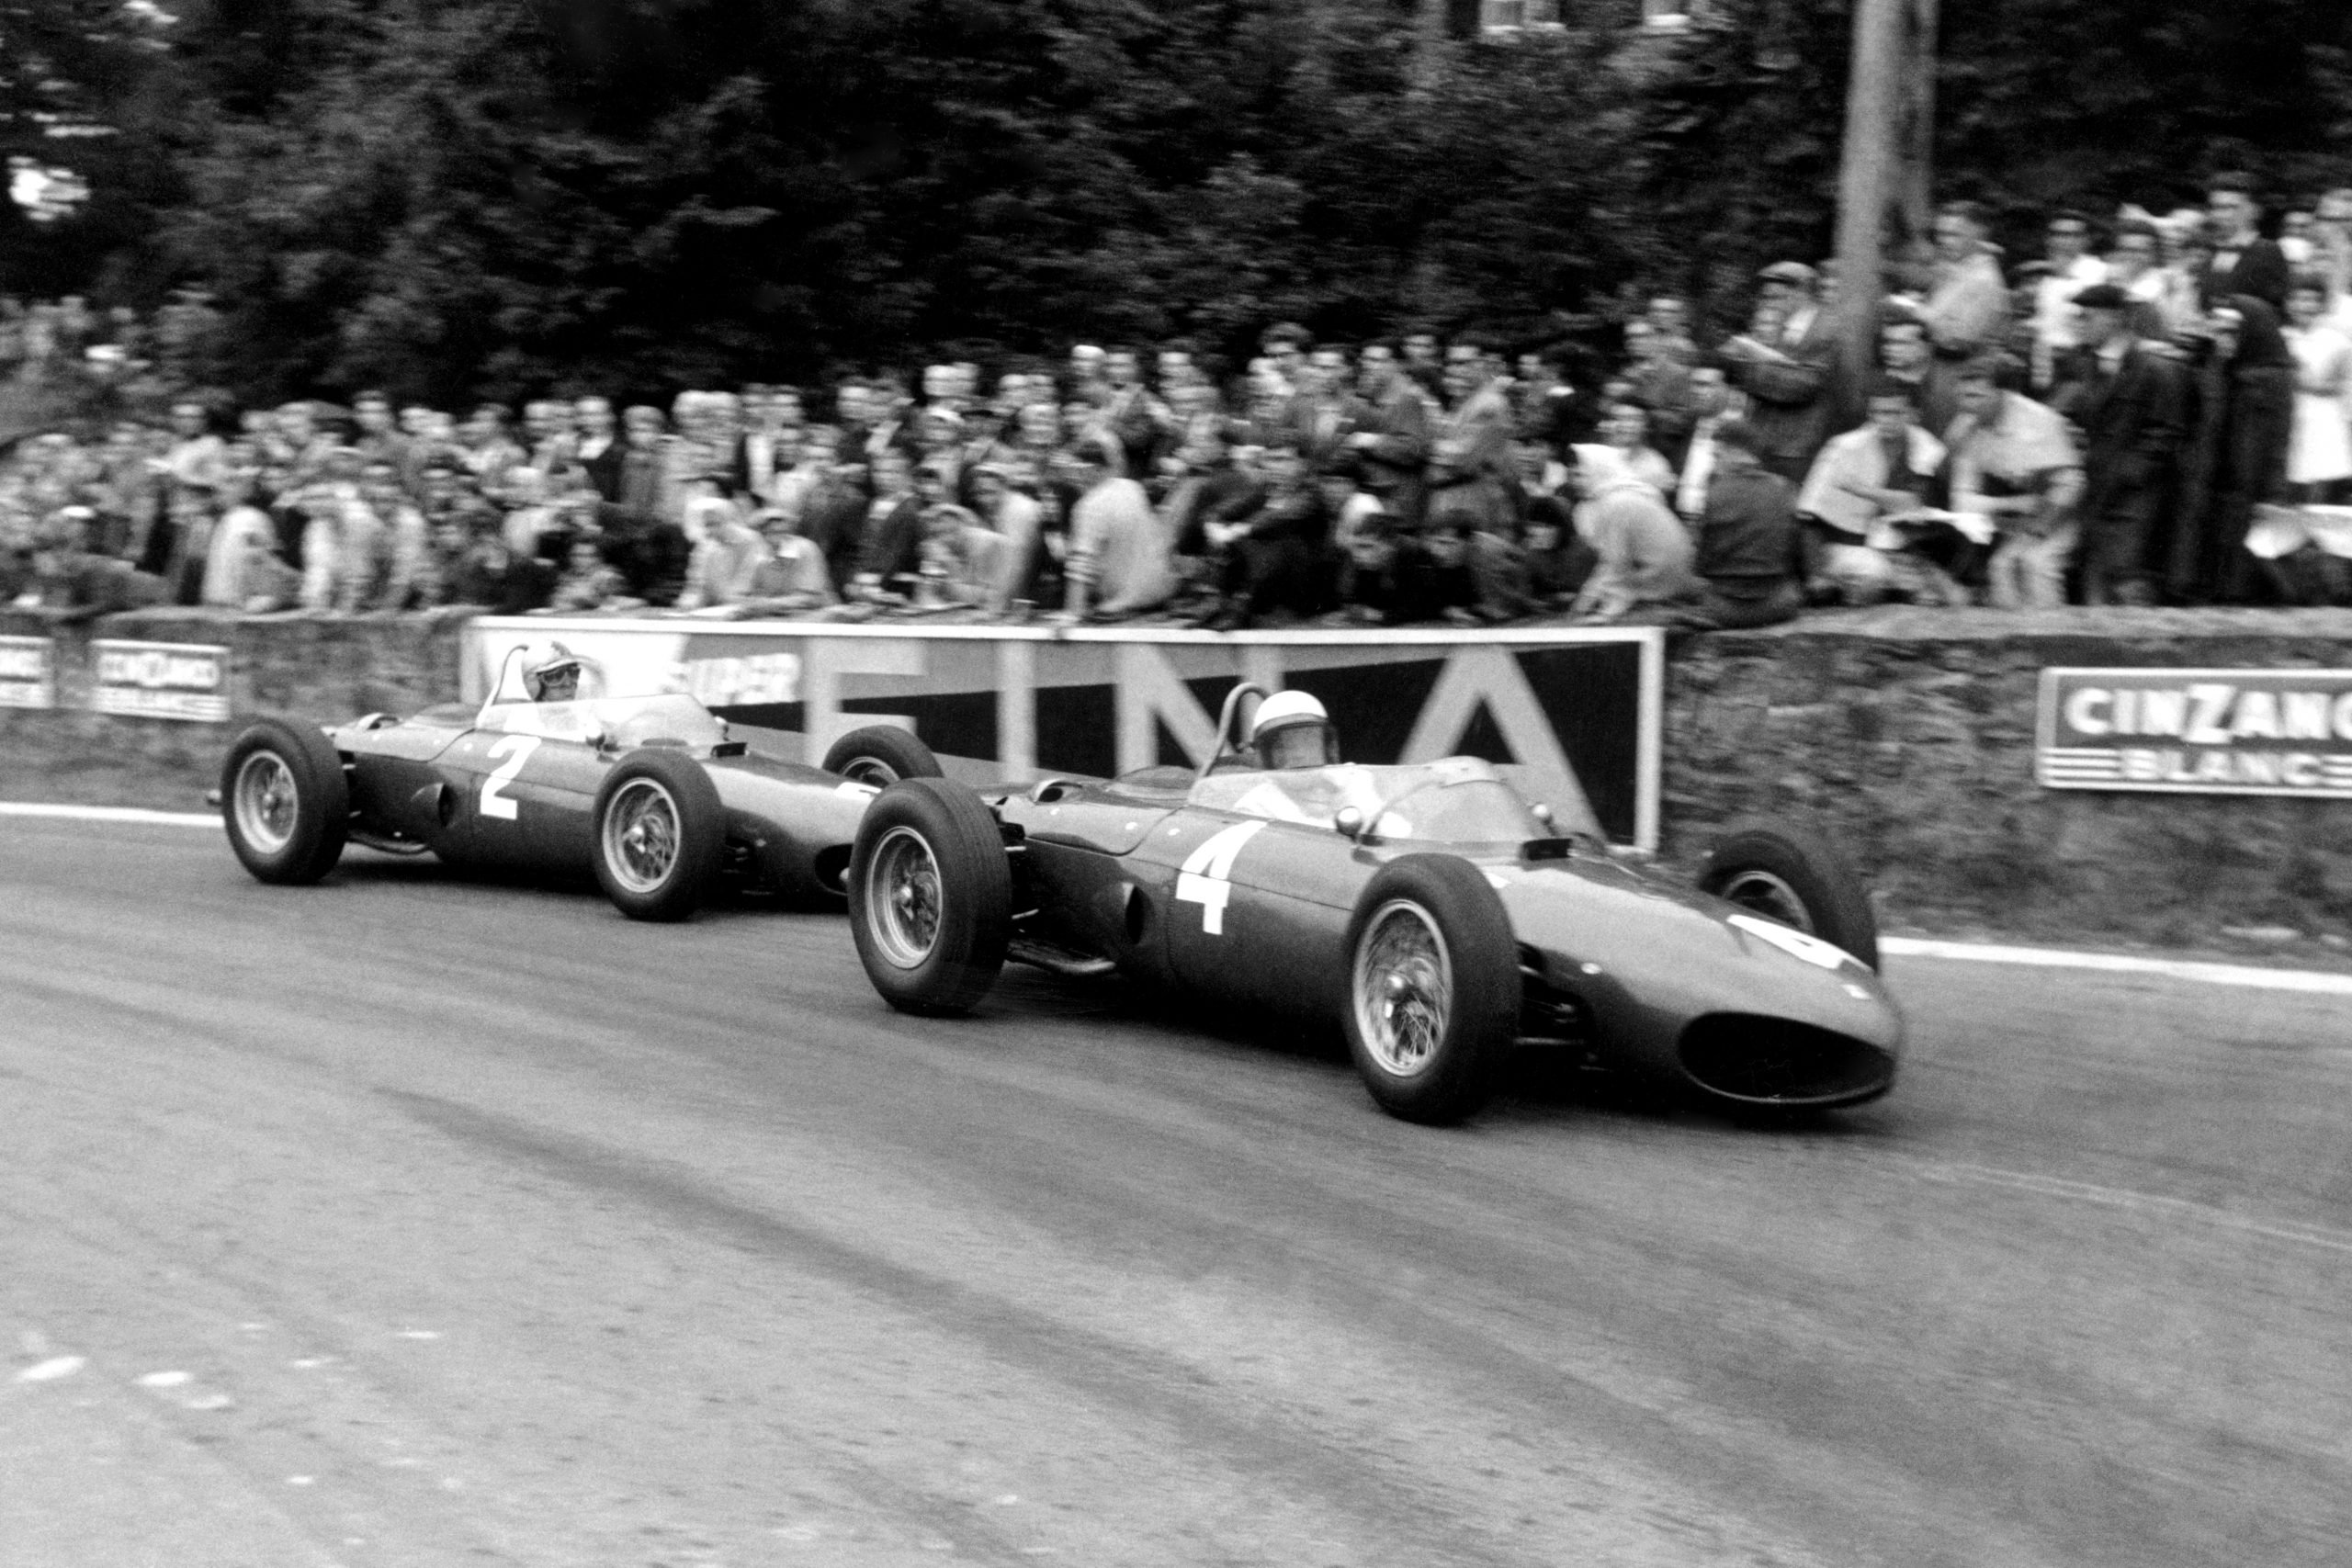 Phil Hill leads Wolfgang von Trips (Ferrari 156) into La Source Hairpin. They finished in 1st and 2nd respectively.